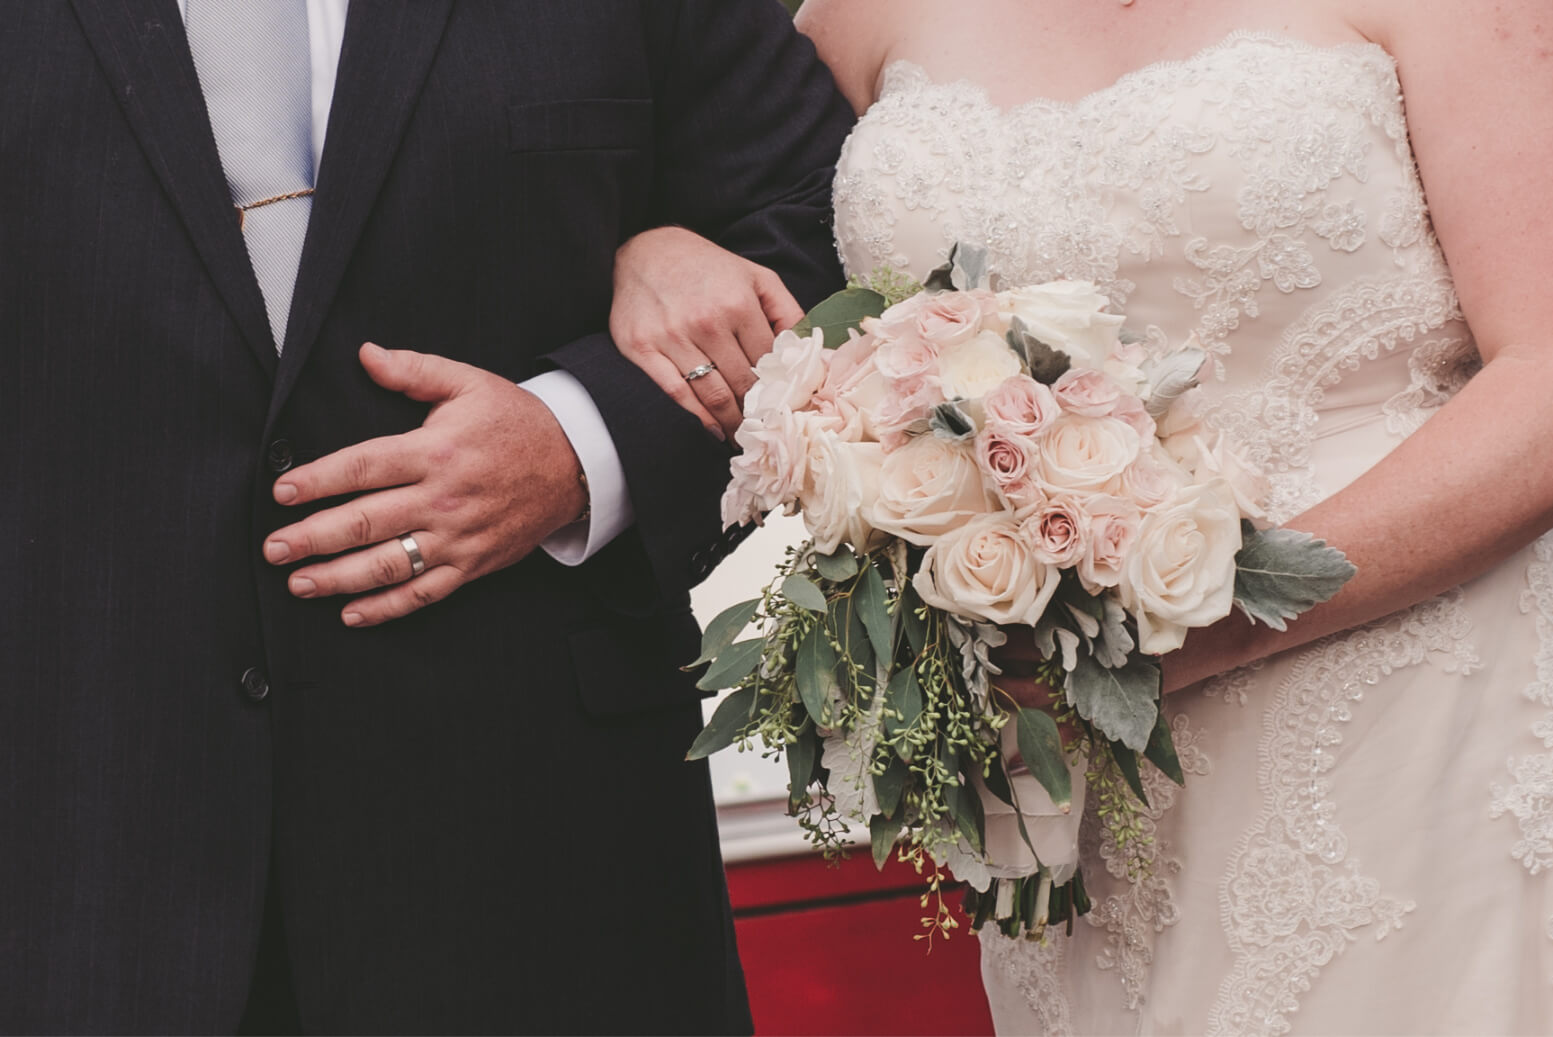 River_Rest_Weddings_Website_About_Banner-Holding_Arms.jpg